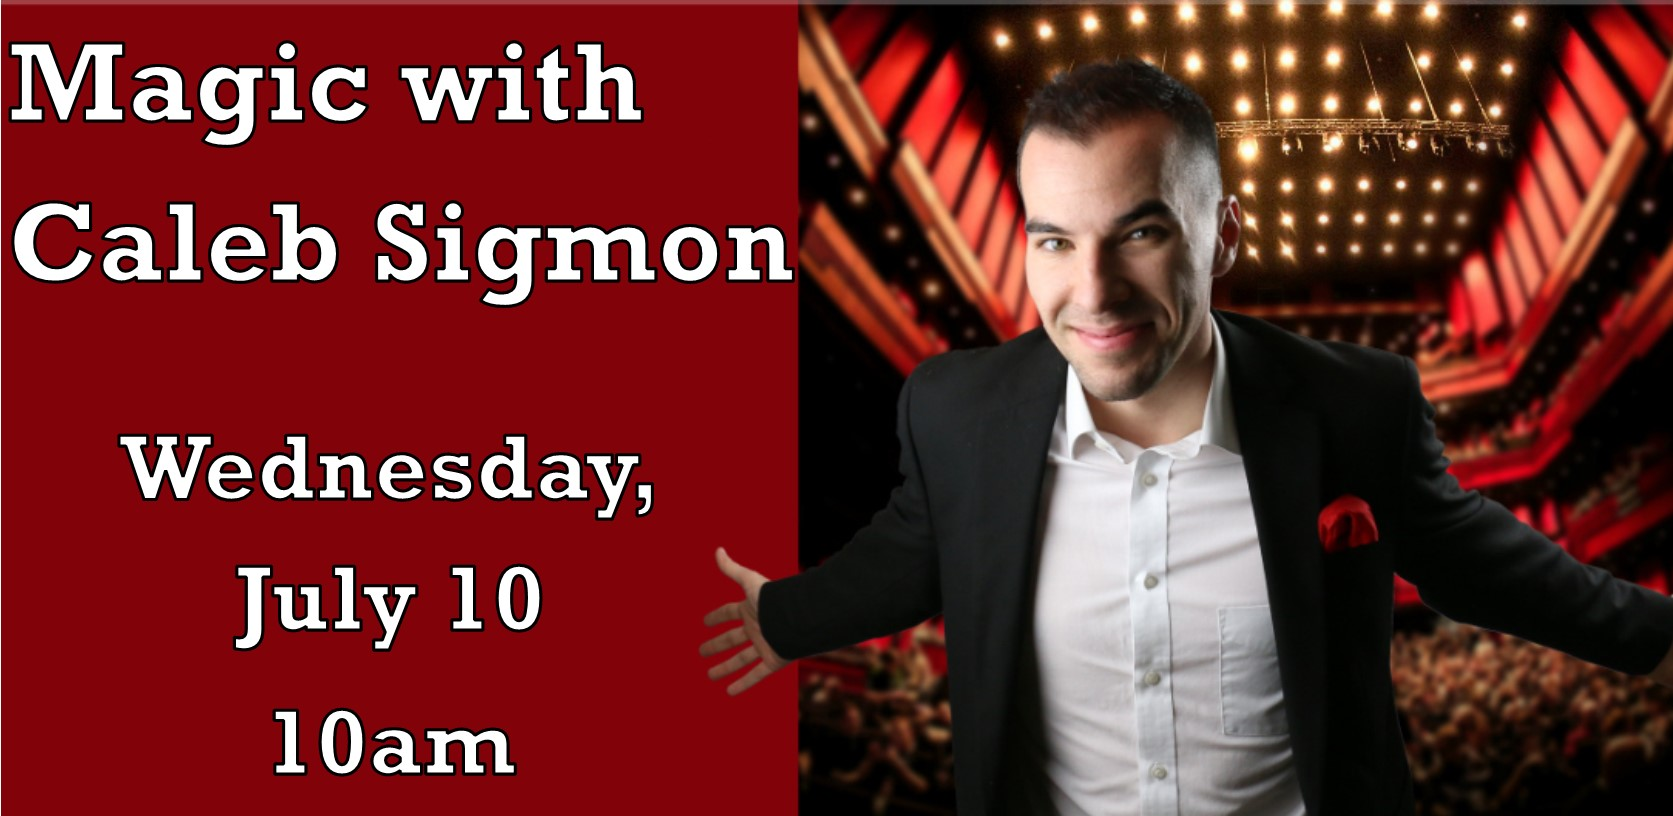 Magic with Caleb Sigmon